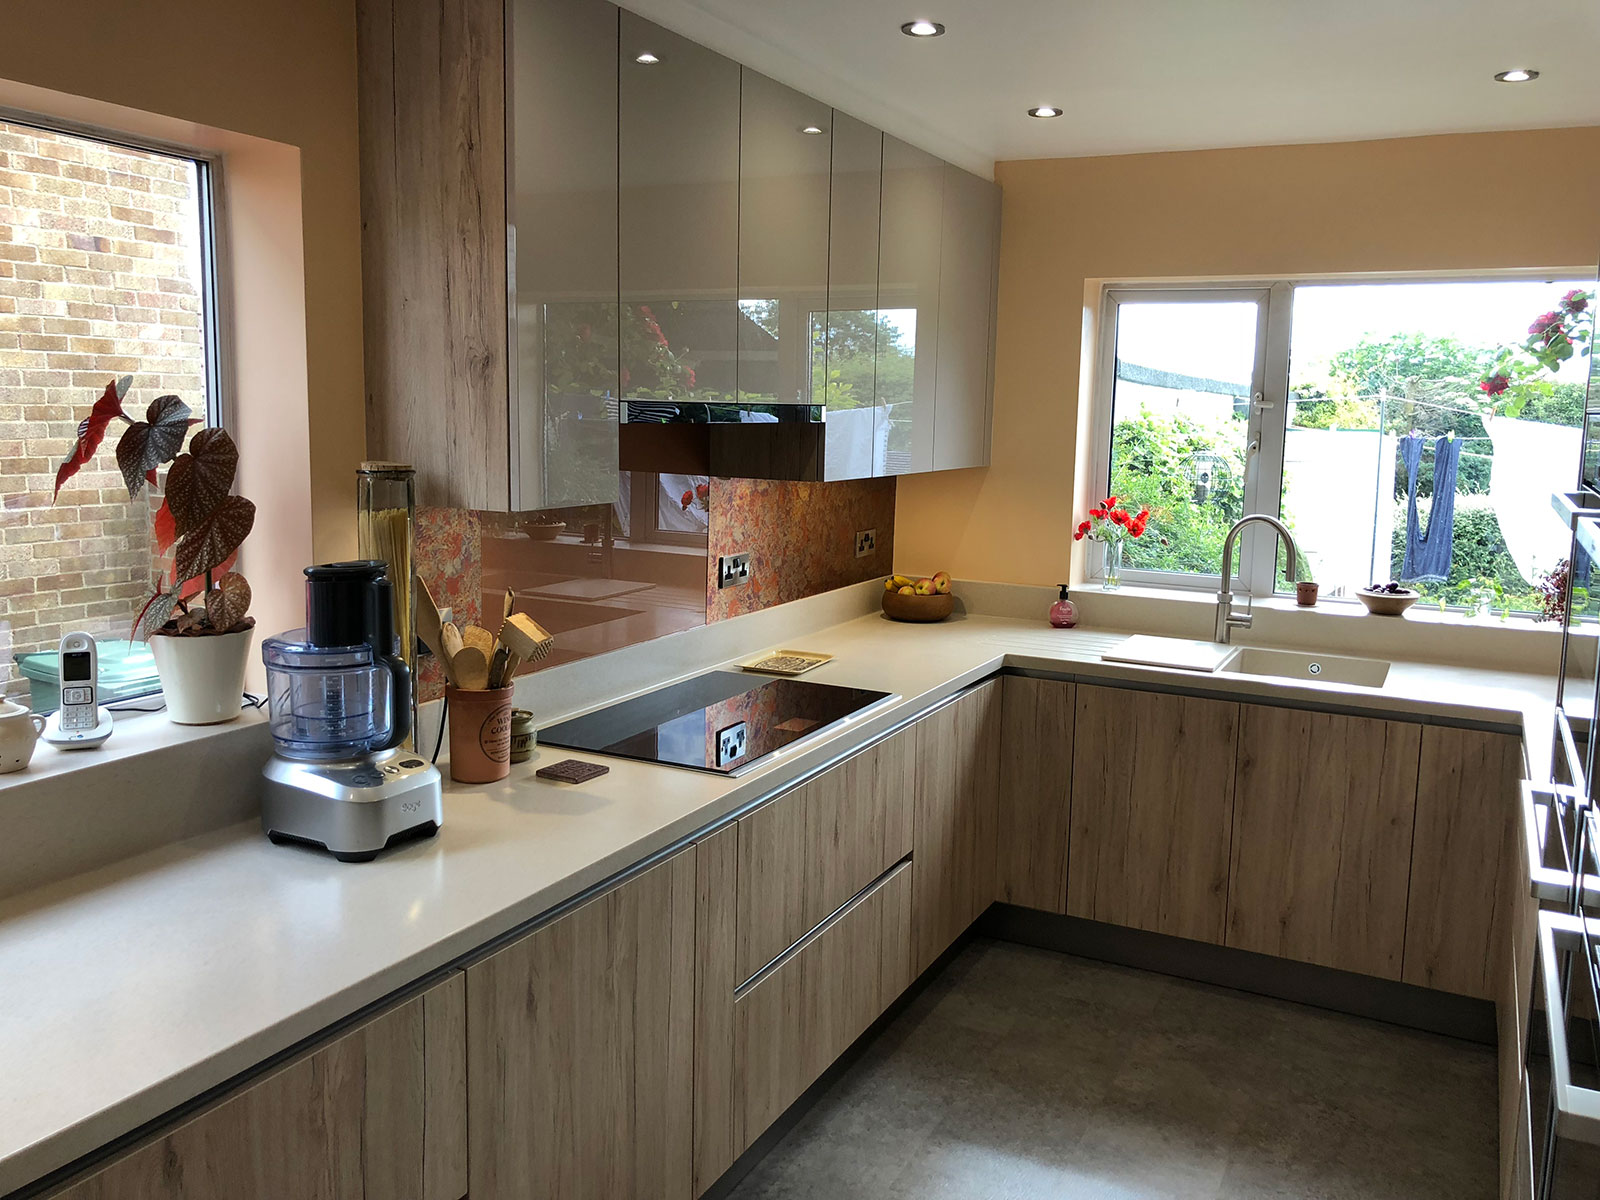 handless fitted kitchen Leeds 15 - 4